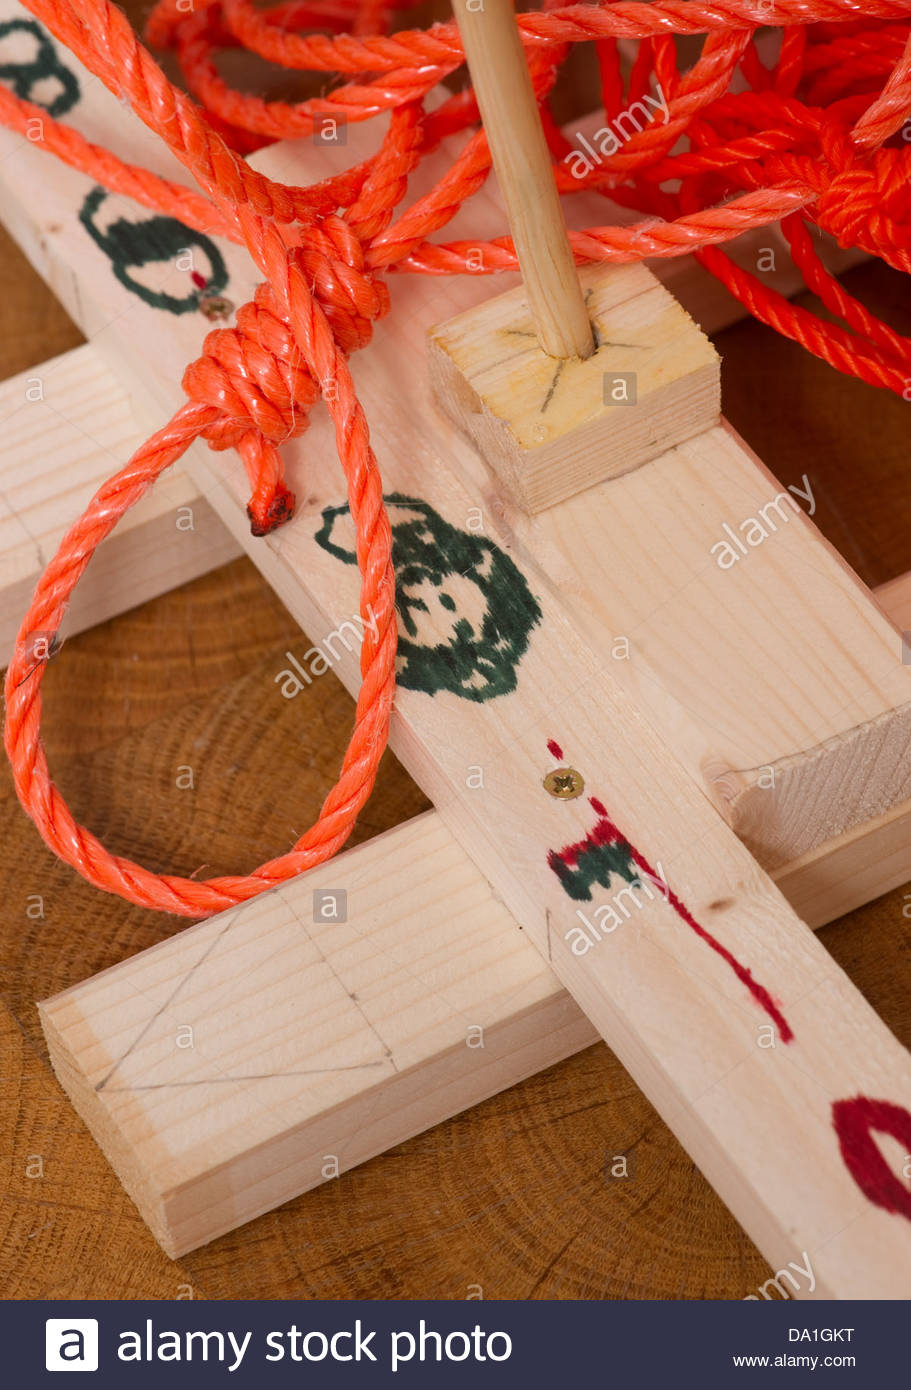 Toy wooden boat raft with nylon rope string - Stock Image